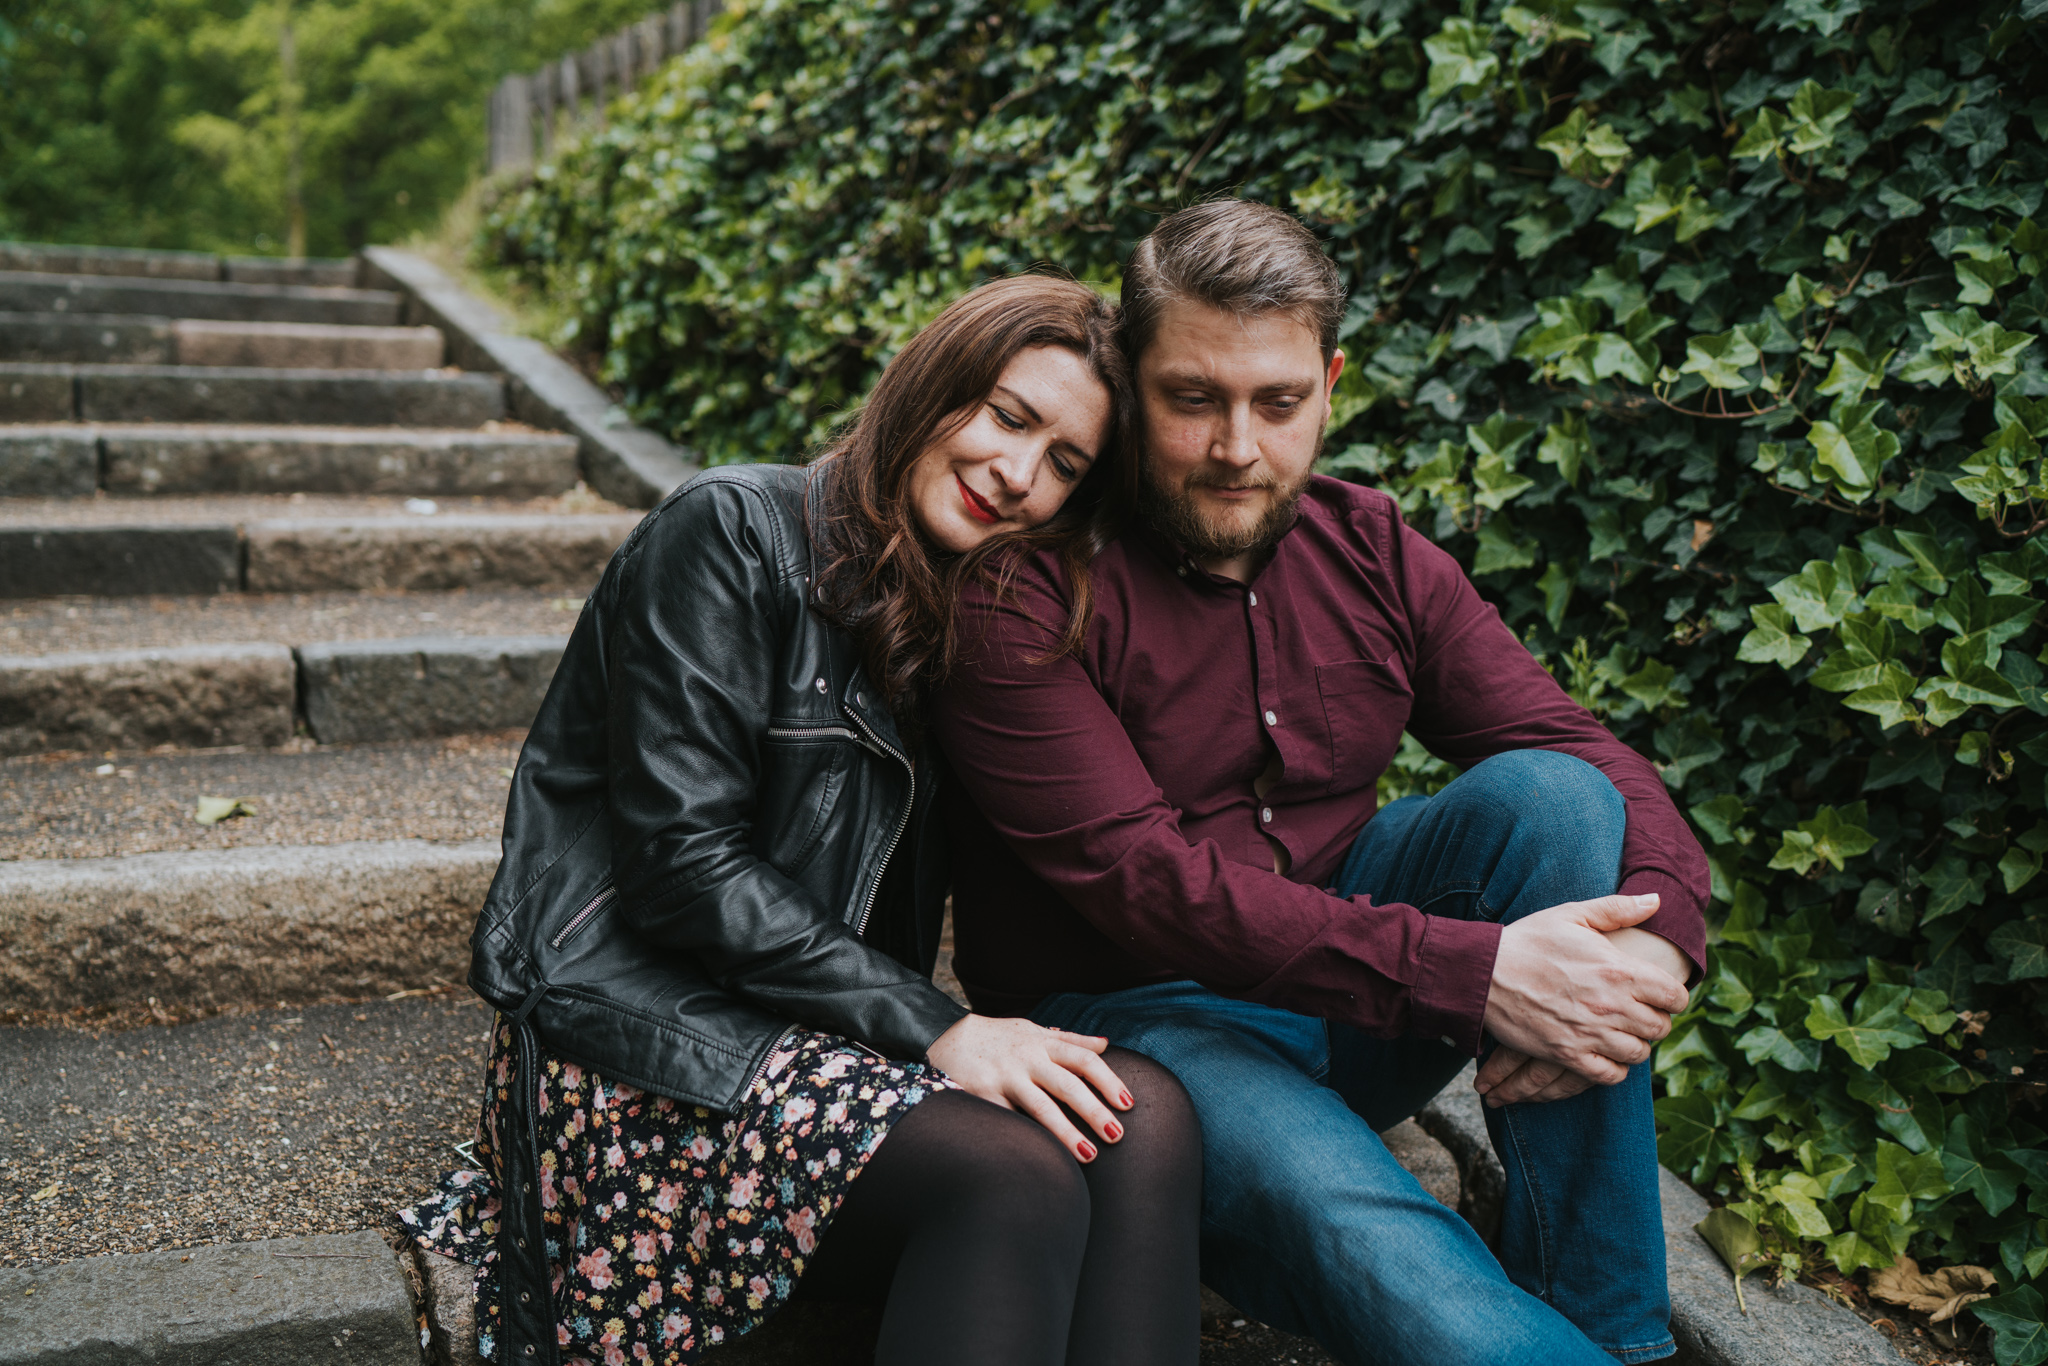 natalie-john-urban-london-engagement-grace-elizabeth-colchester-essex-alternative-wedding-photographer-essex-suffolk-norfolk-devon (19 of 66).jpg